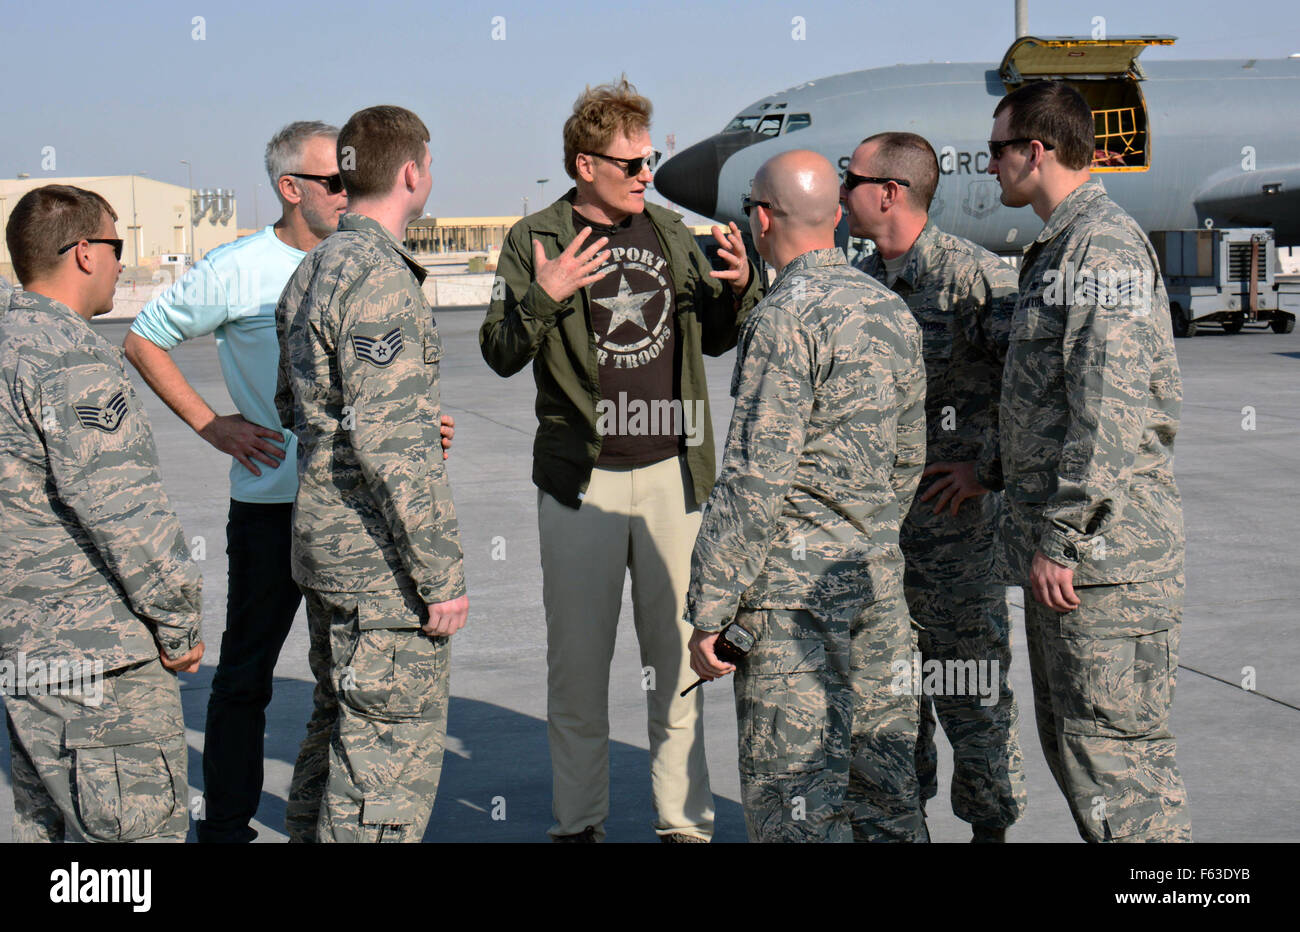 Late night talk show host and comedian Conan O'Brien speaks to U.S. airmen during a visit to the flight line - Stock Image